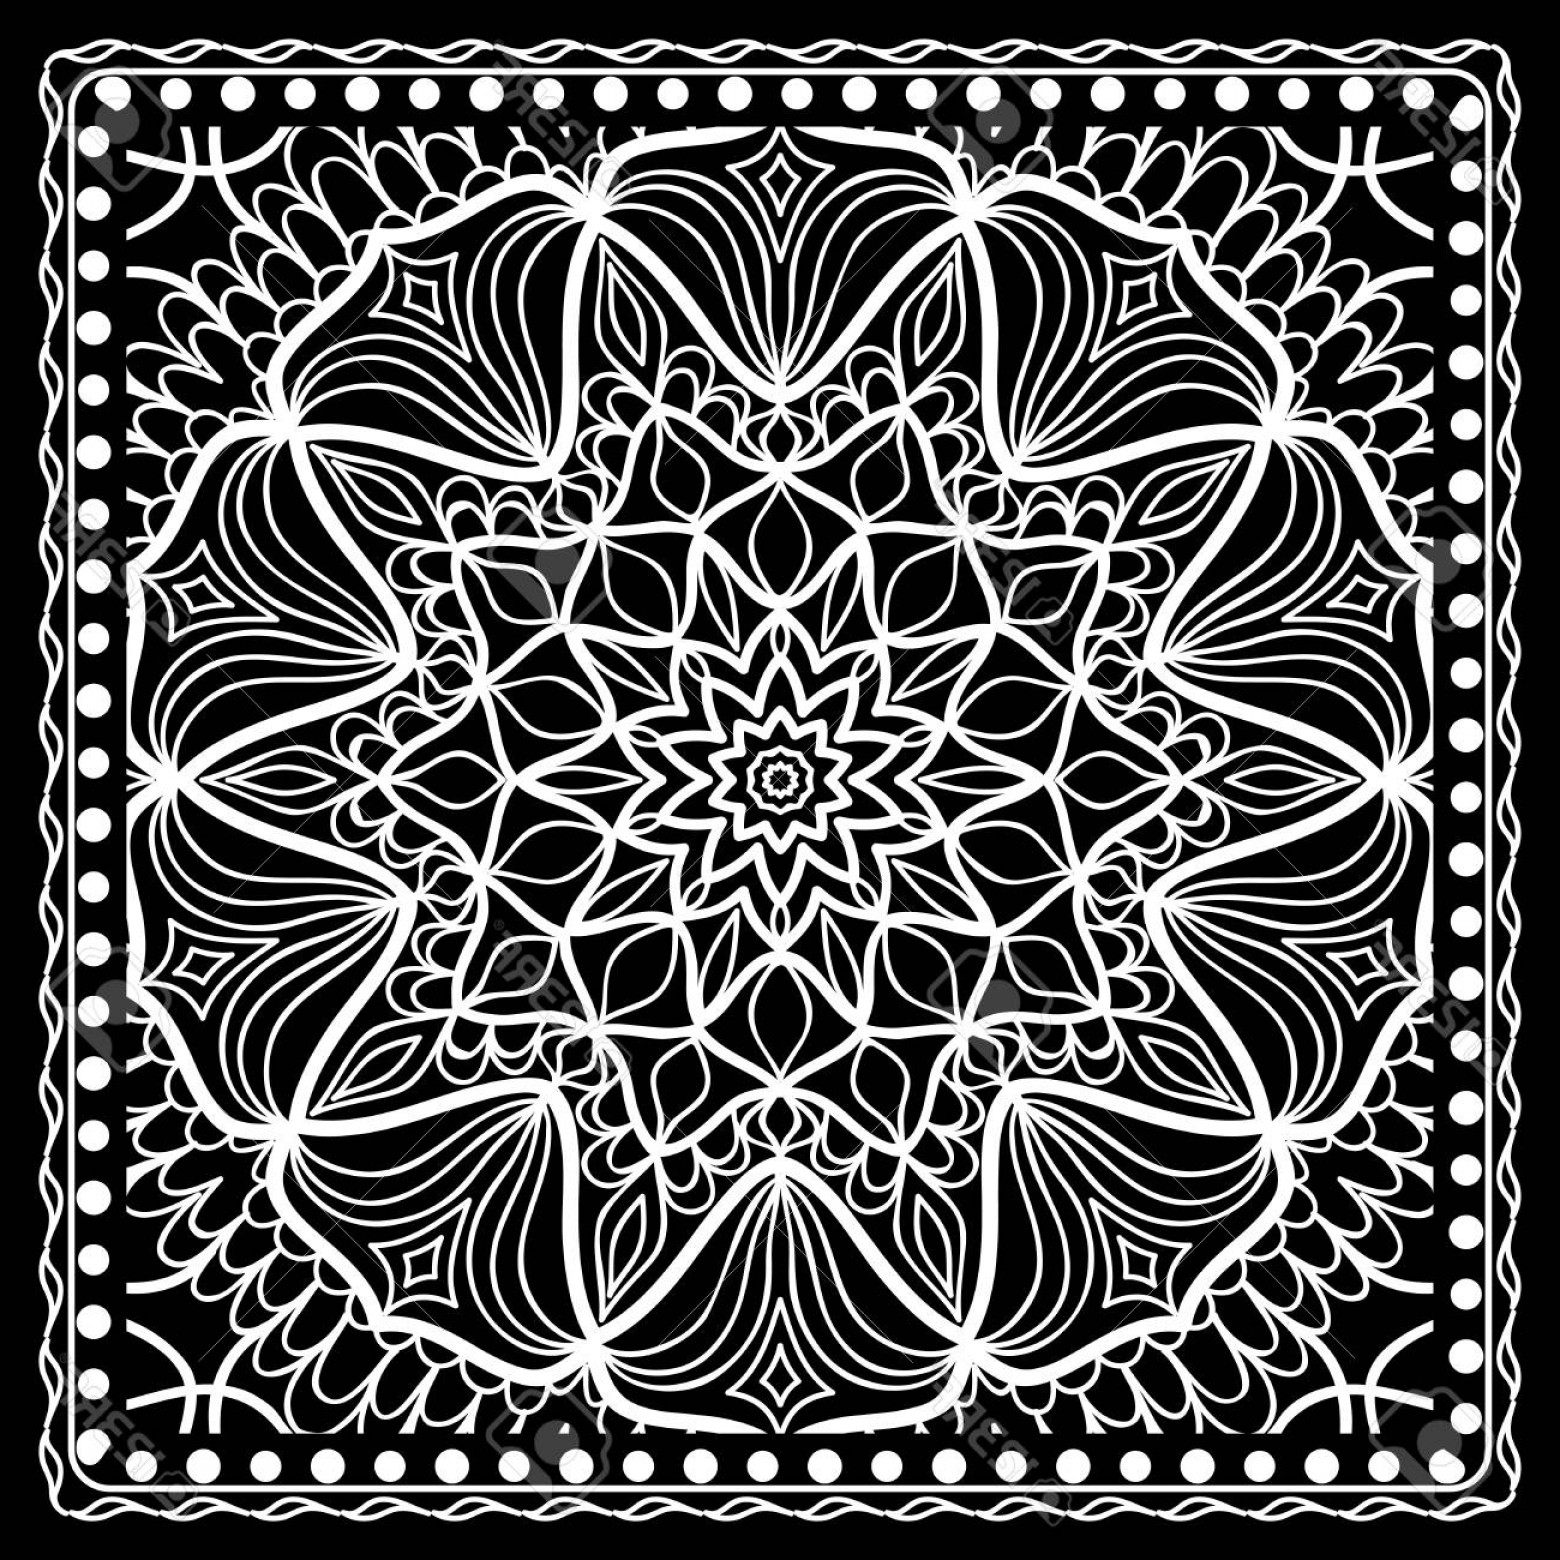 1560x1560 Photostock Vector Fashion Design Black And White Paisley Bandana